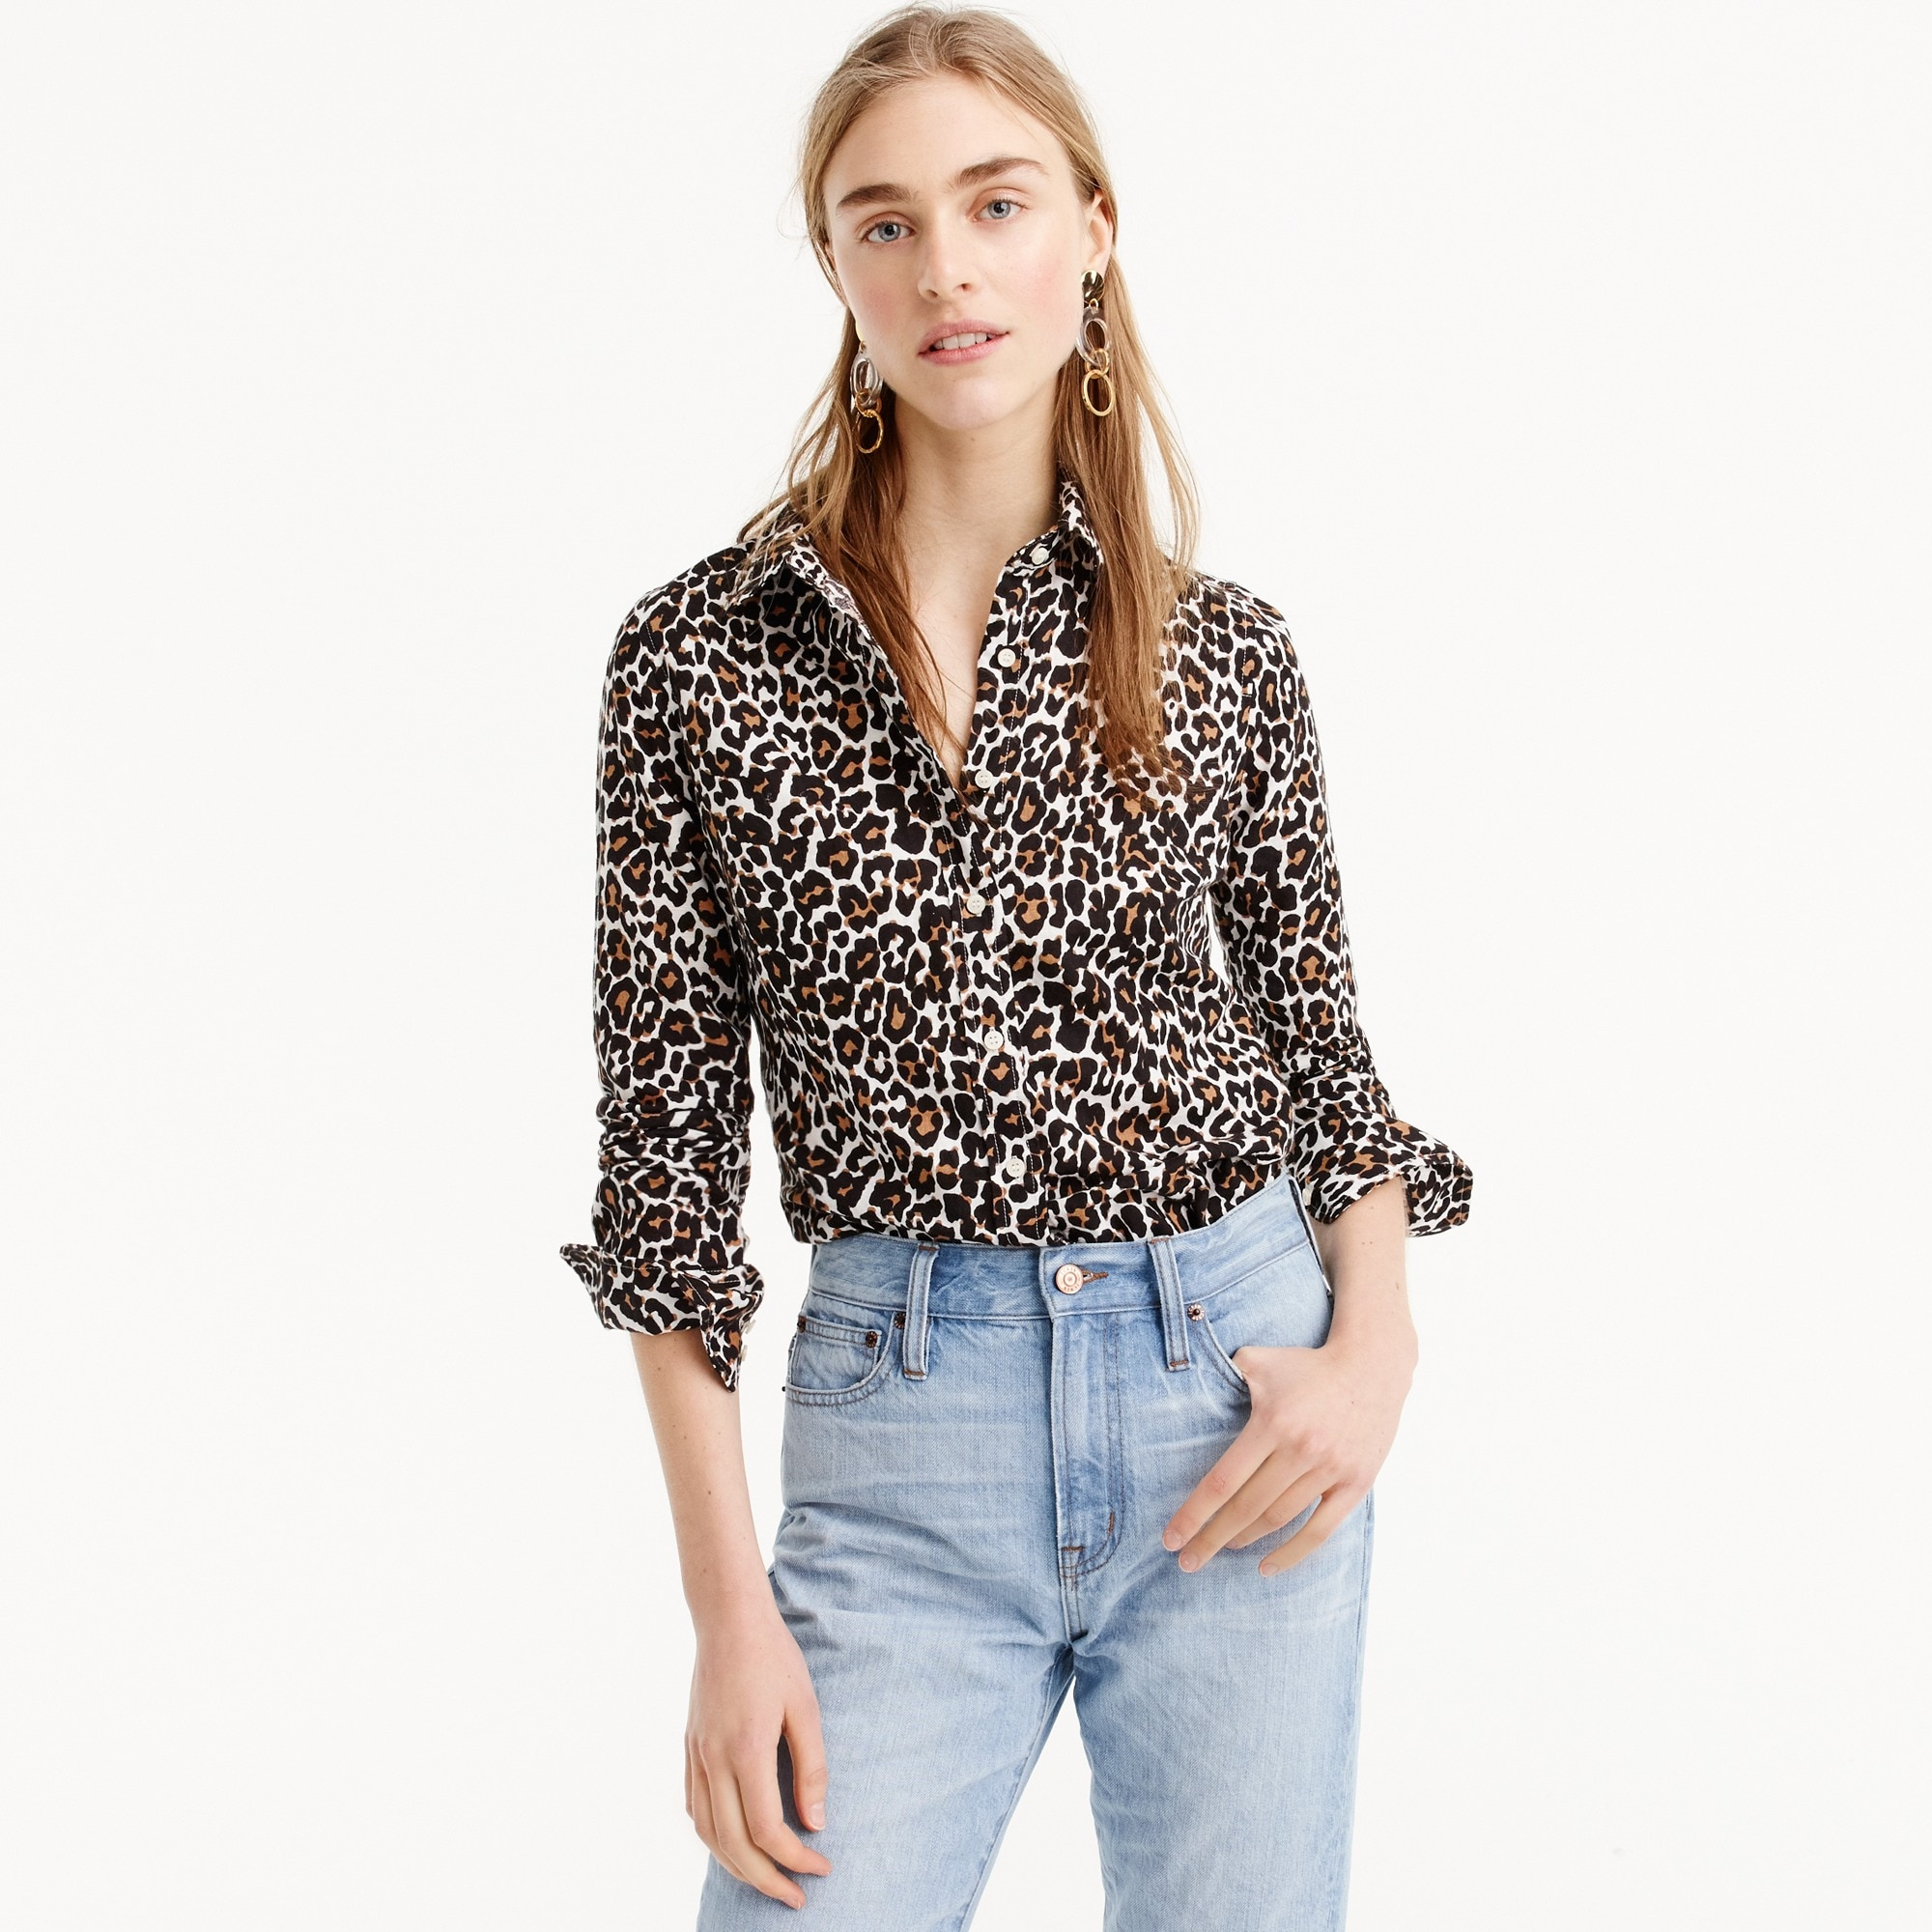 Slim perfect shirt in leopard print